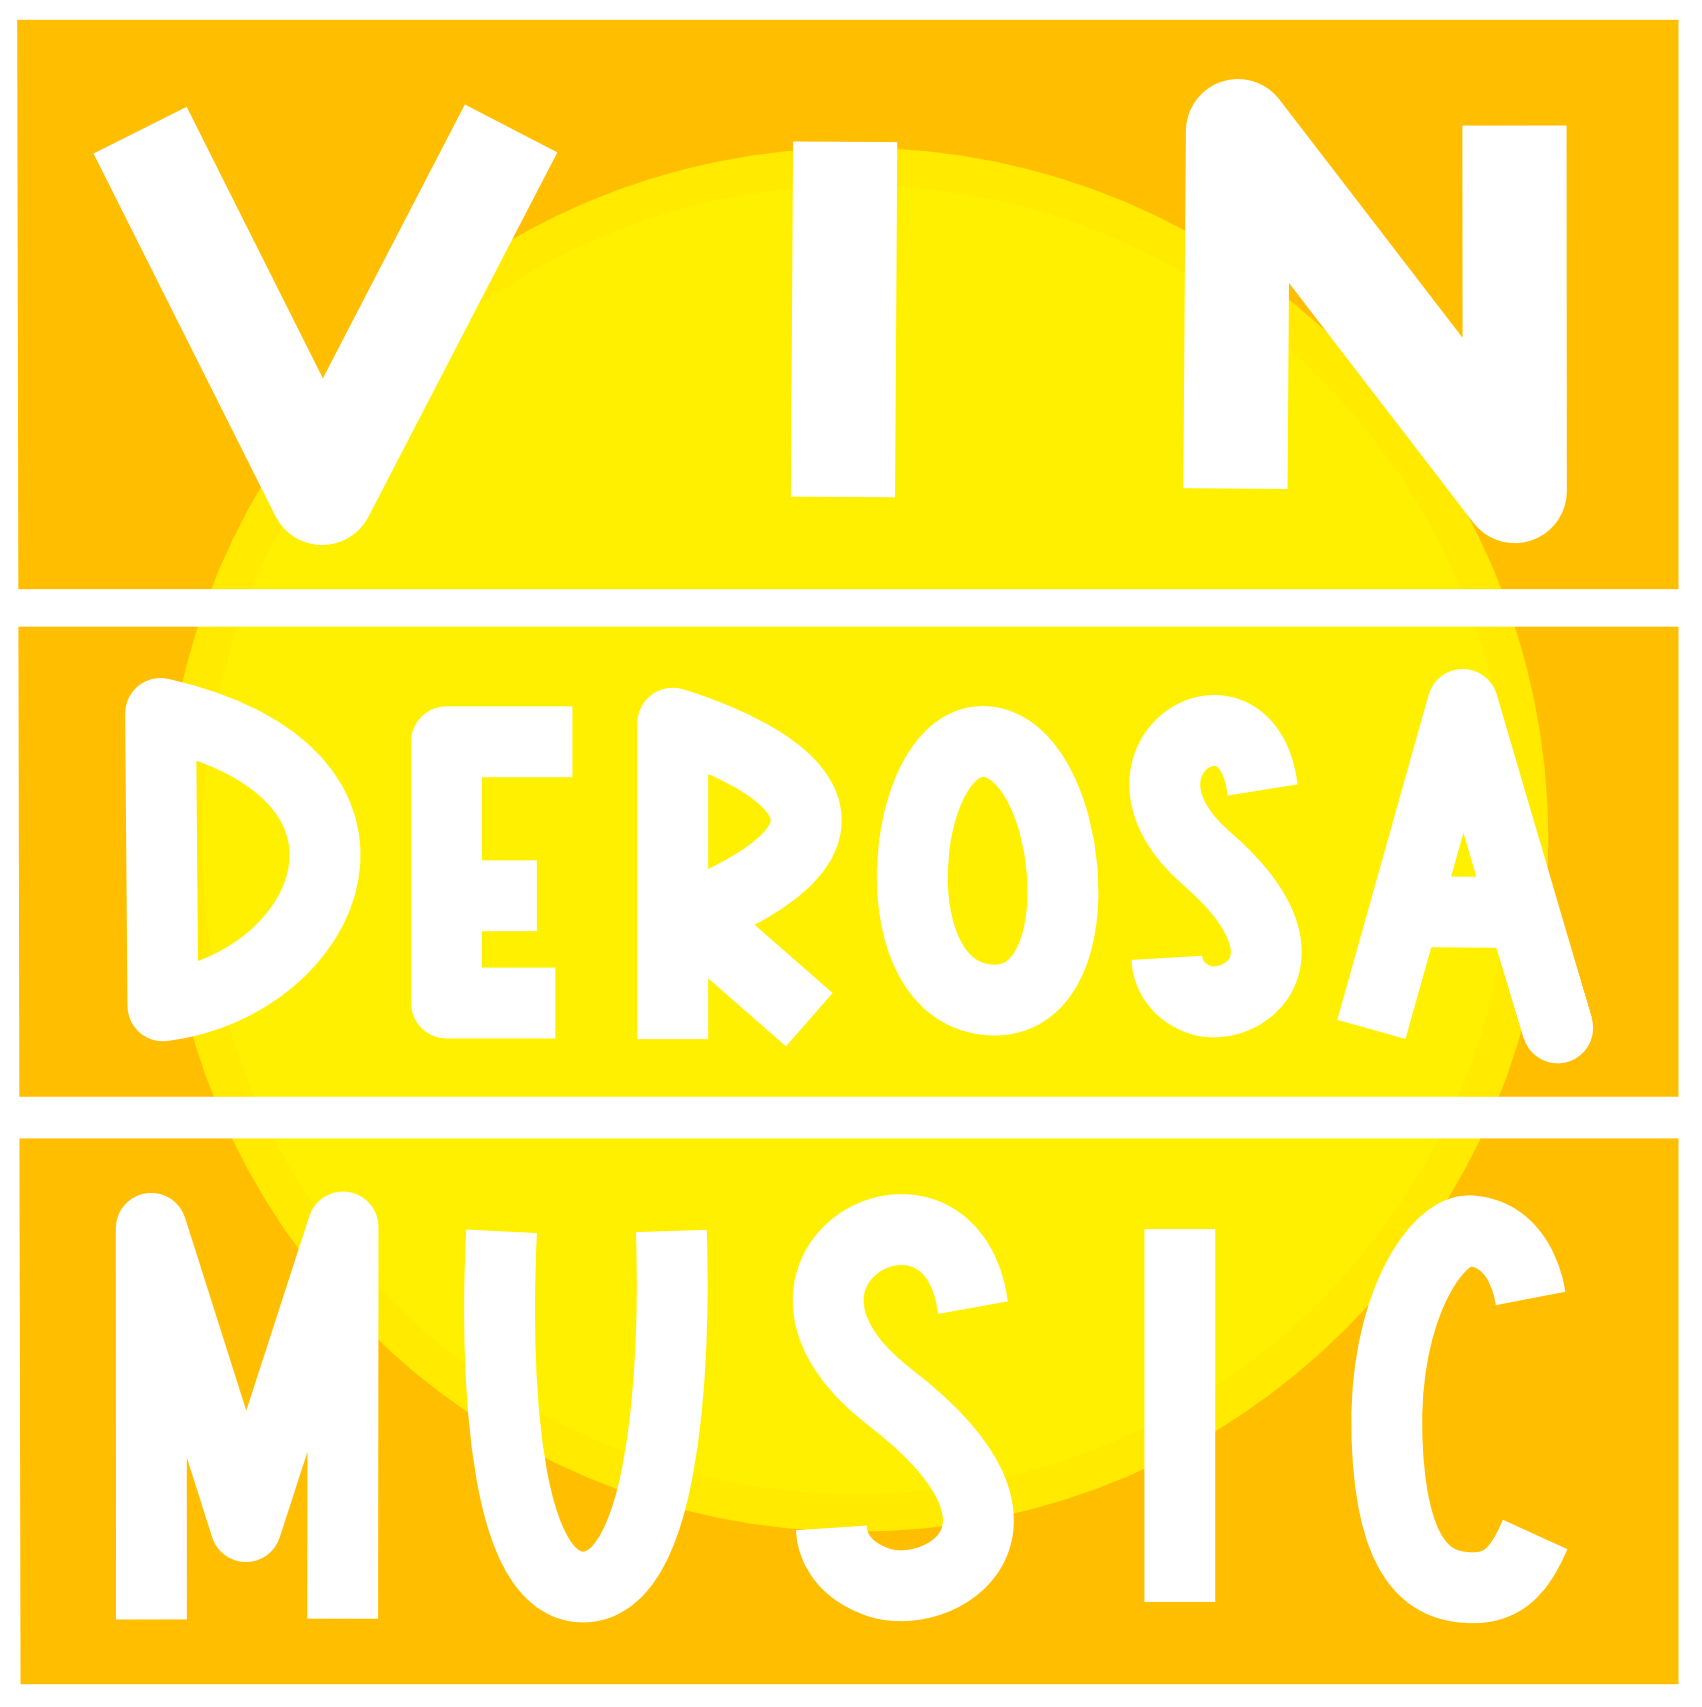 Vin DeRosa Music - Official Website